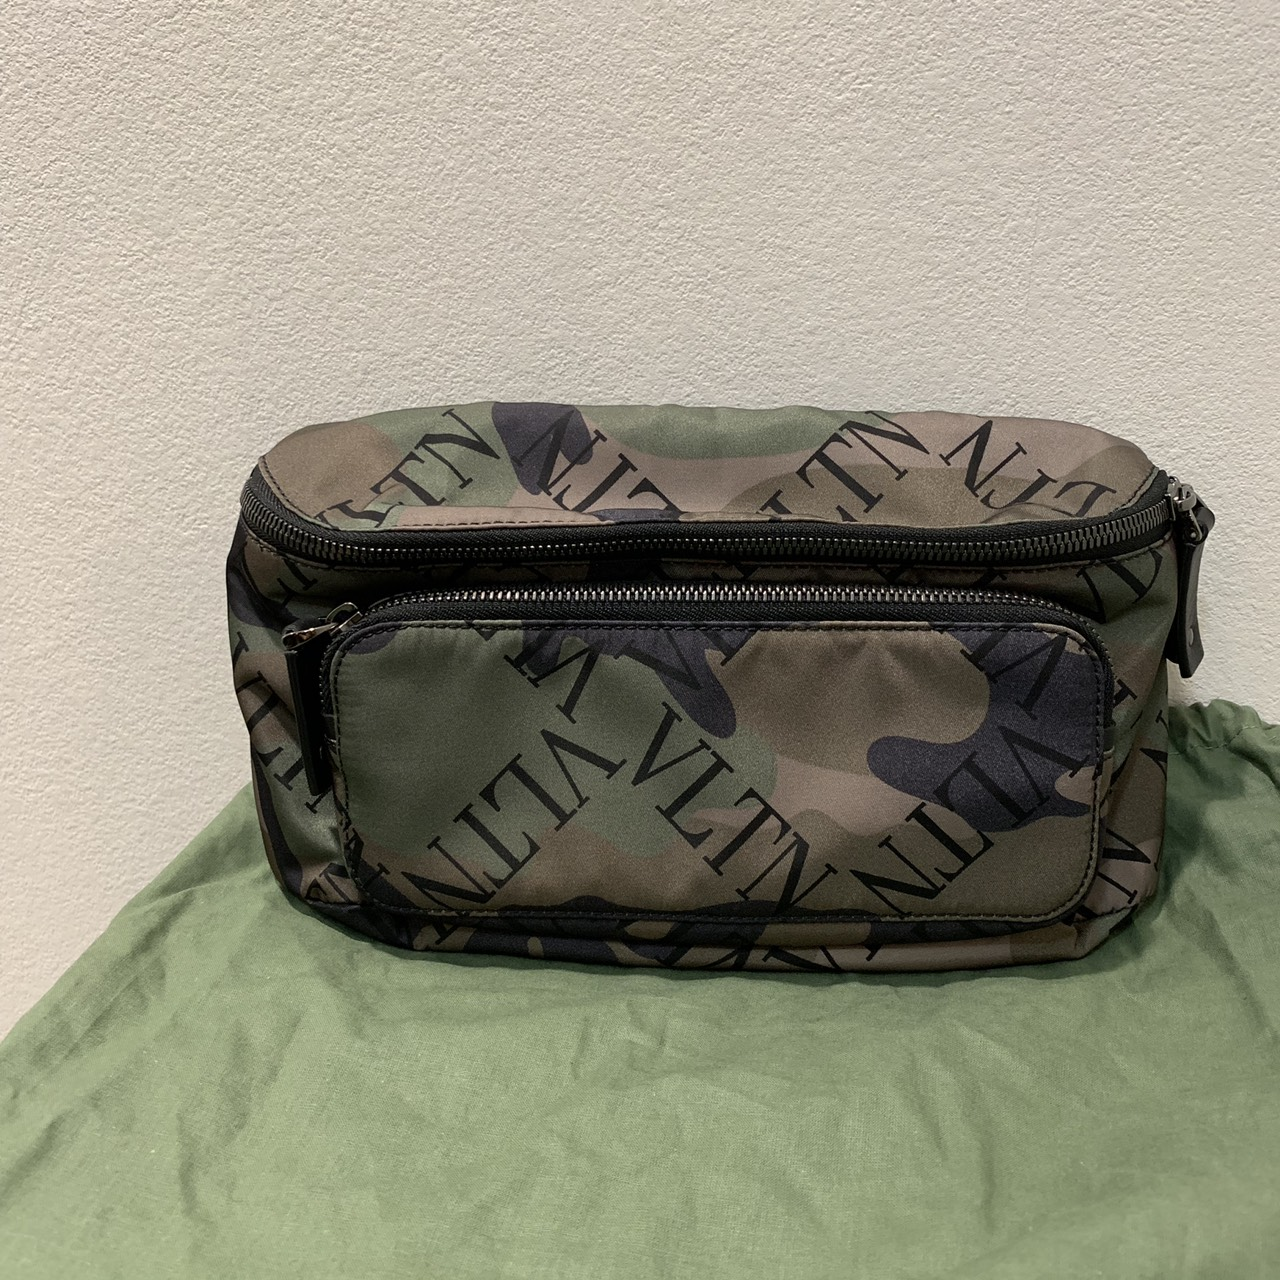 VALENTINO 19SS VLTN GRID CAMO BODY BAG